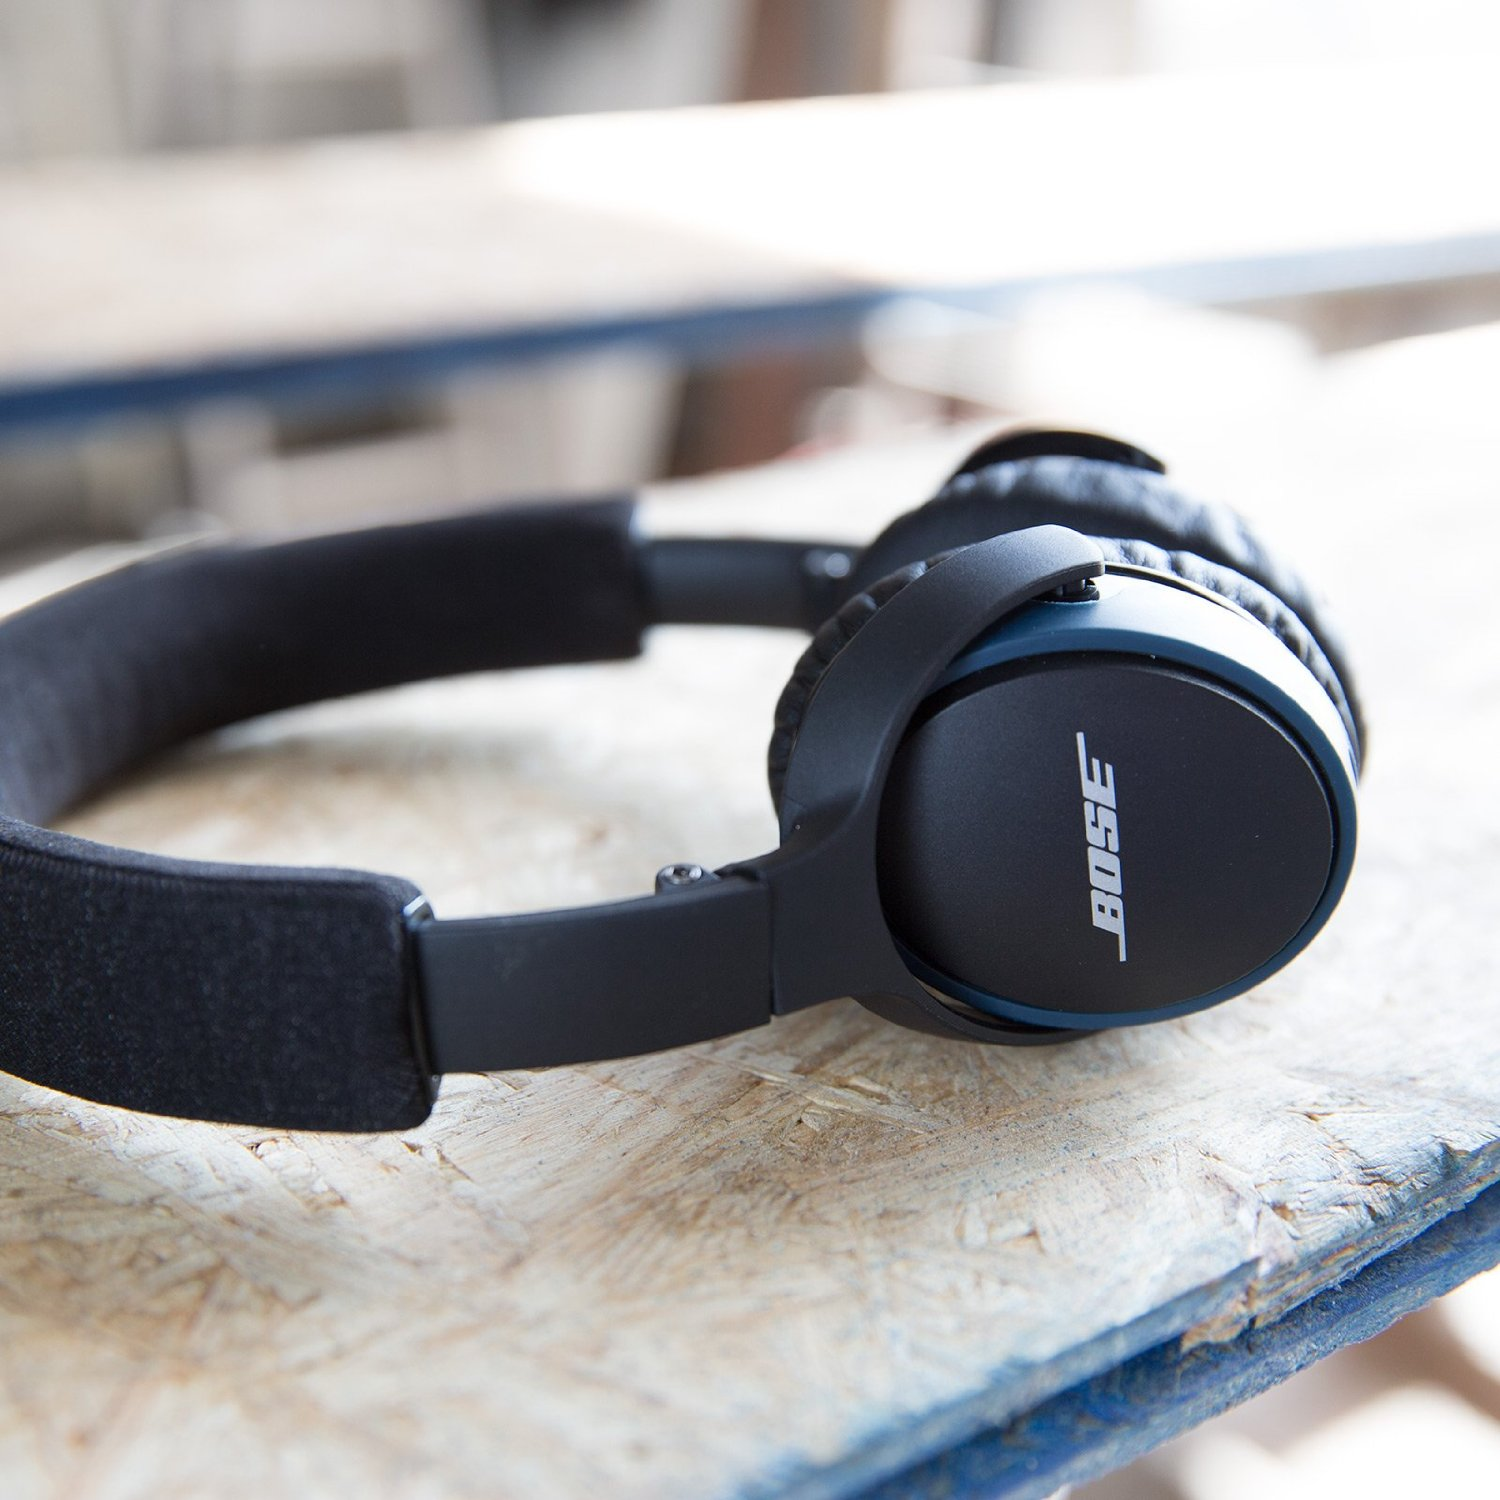 Bose SoundLink Bluetooth On-Ear Headphone